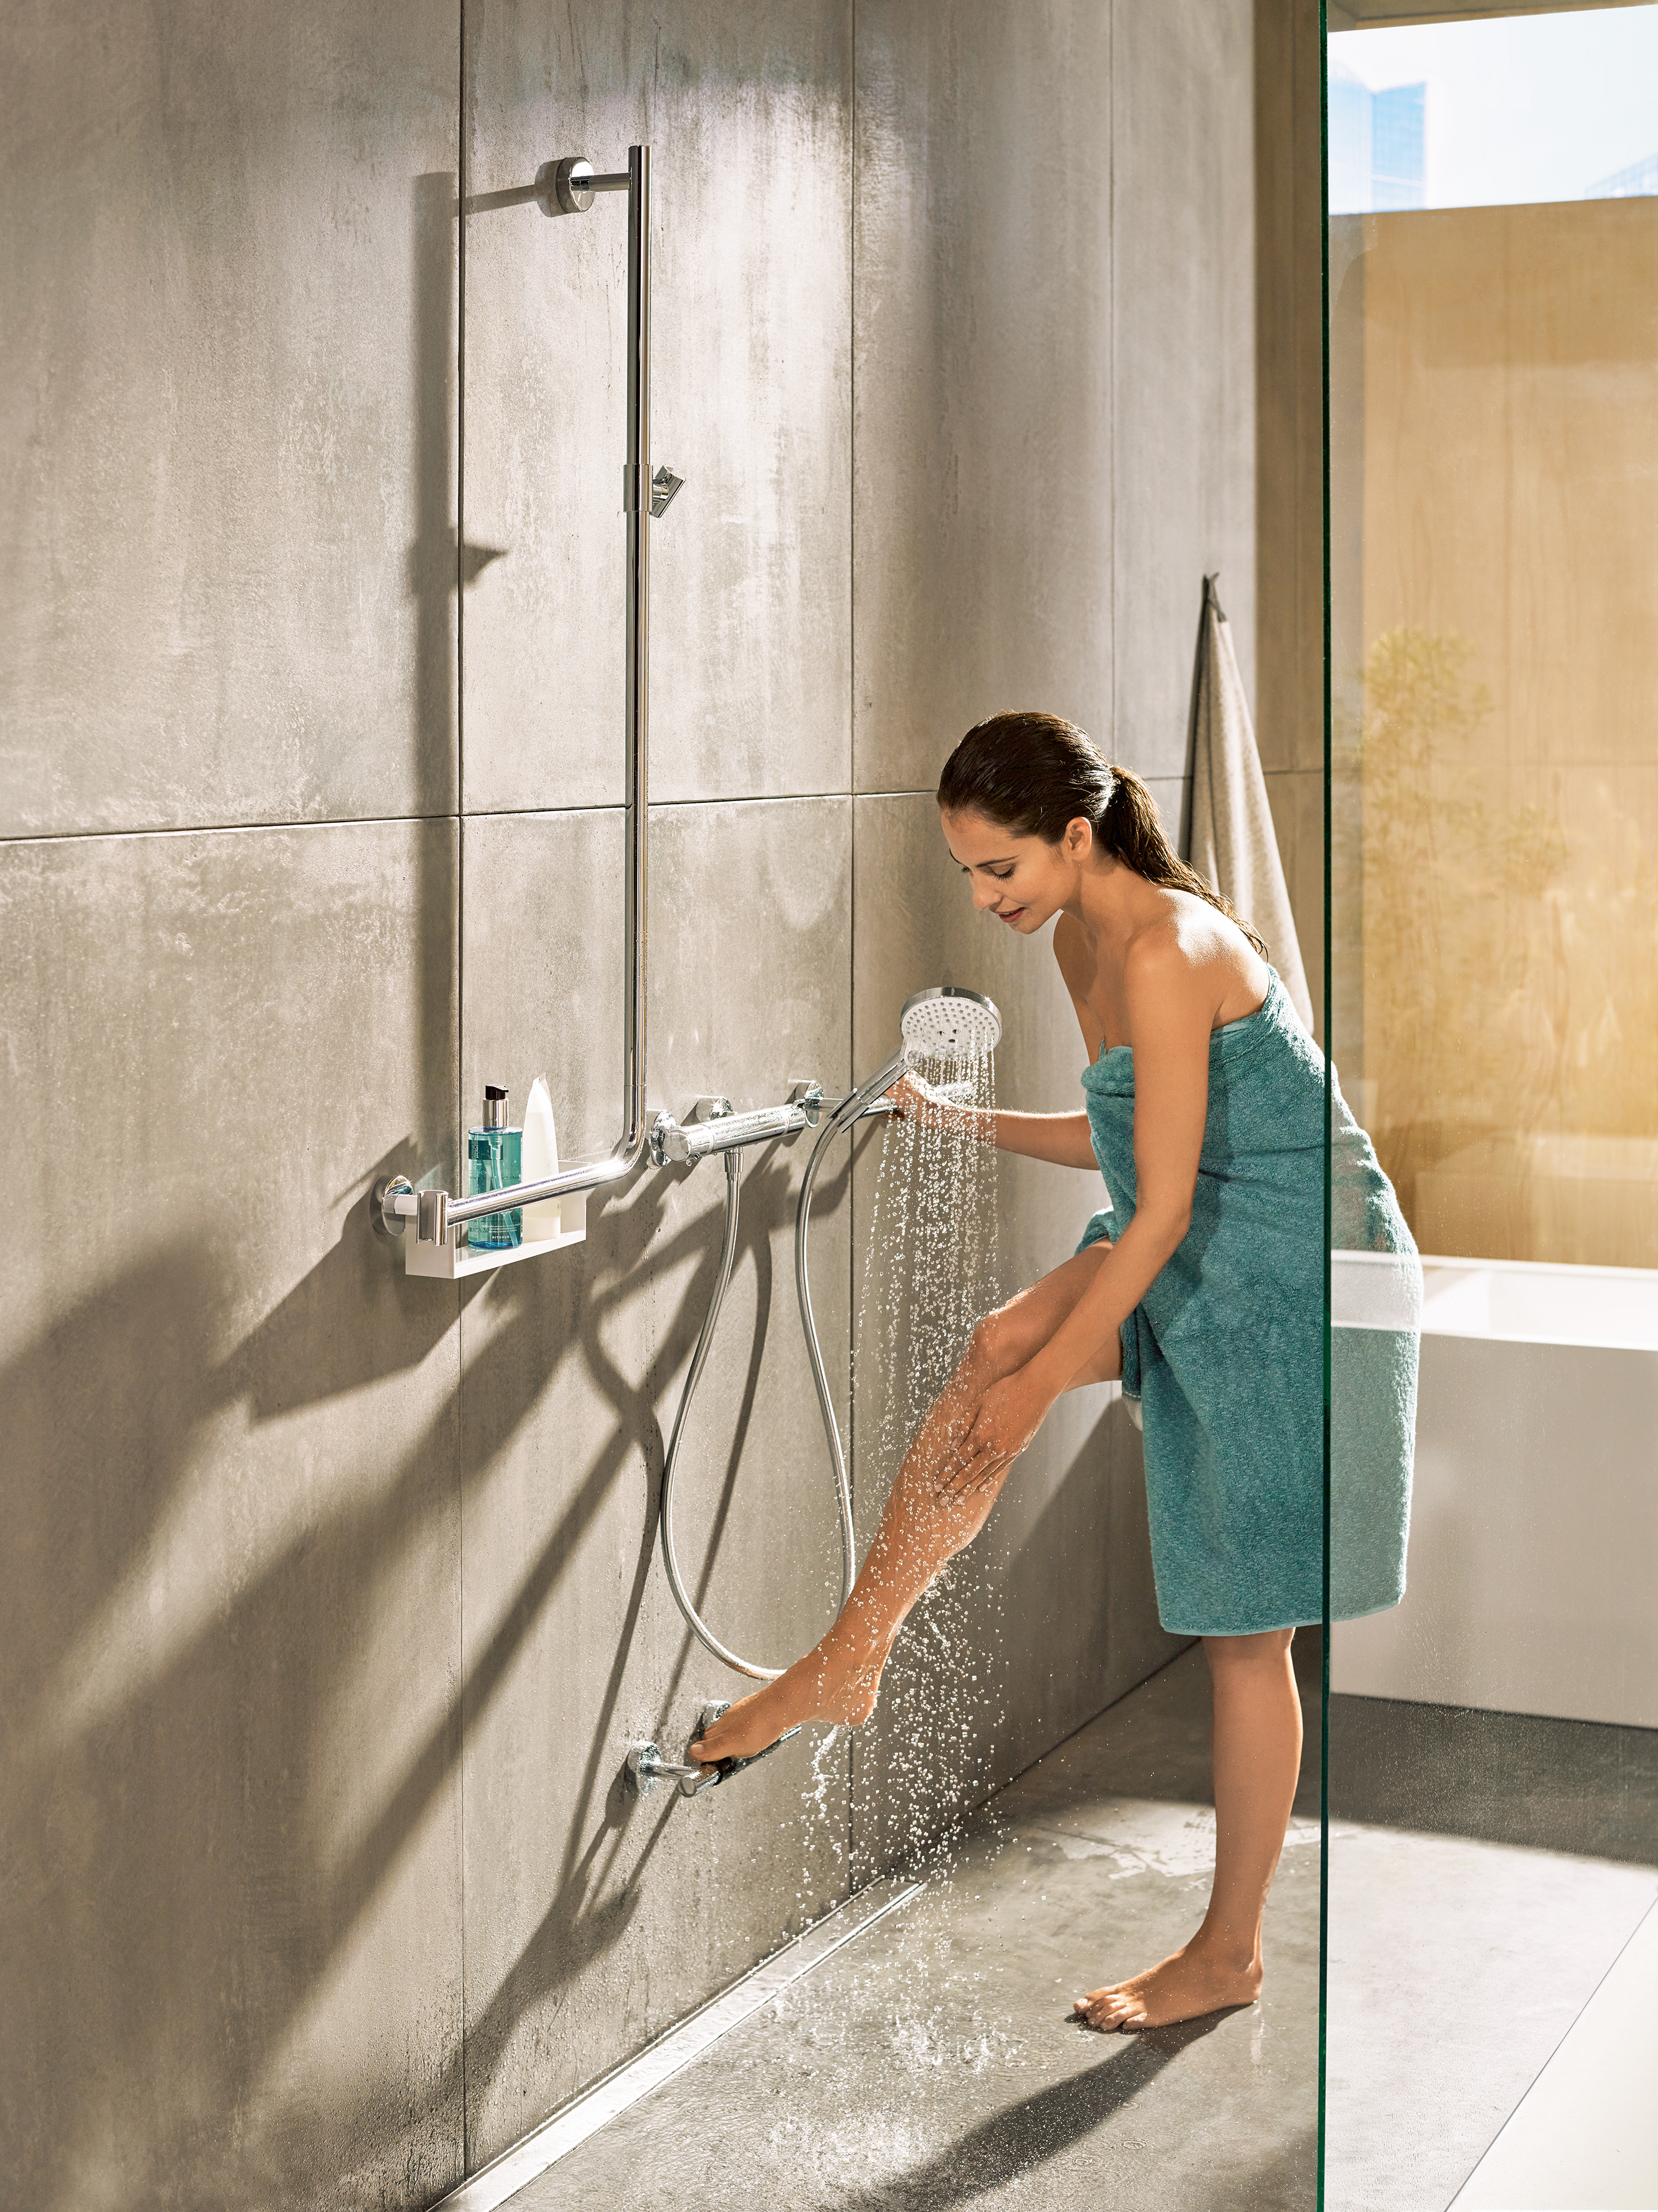 unica comfort shower bar right by hansgrohe stylepark